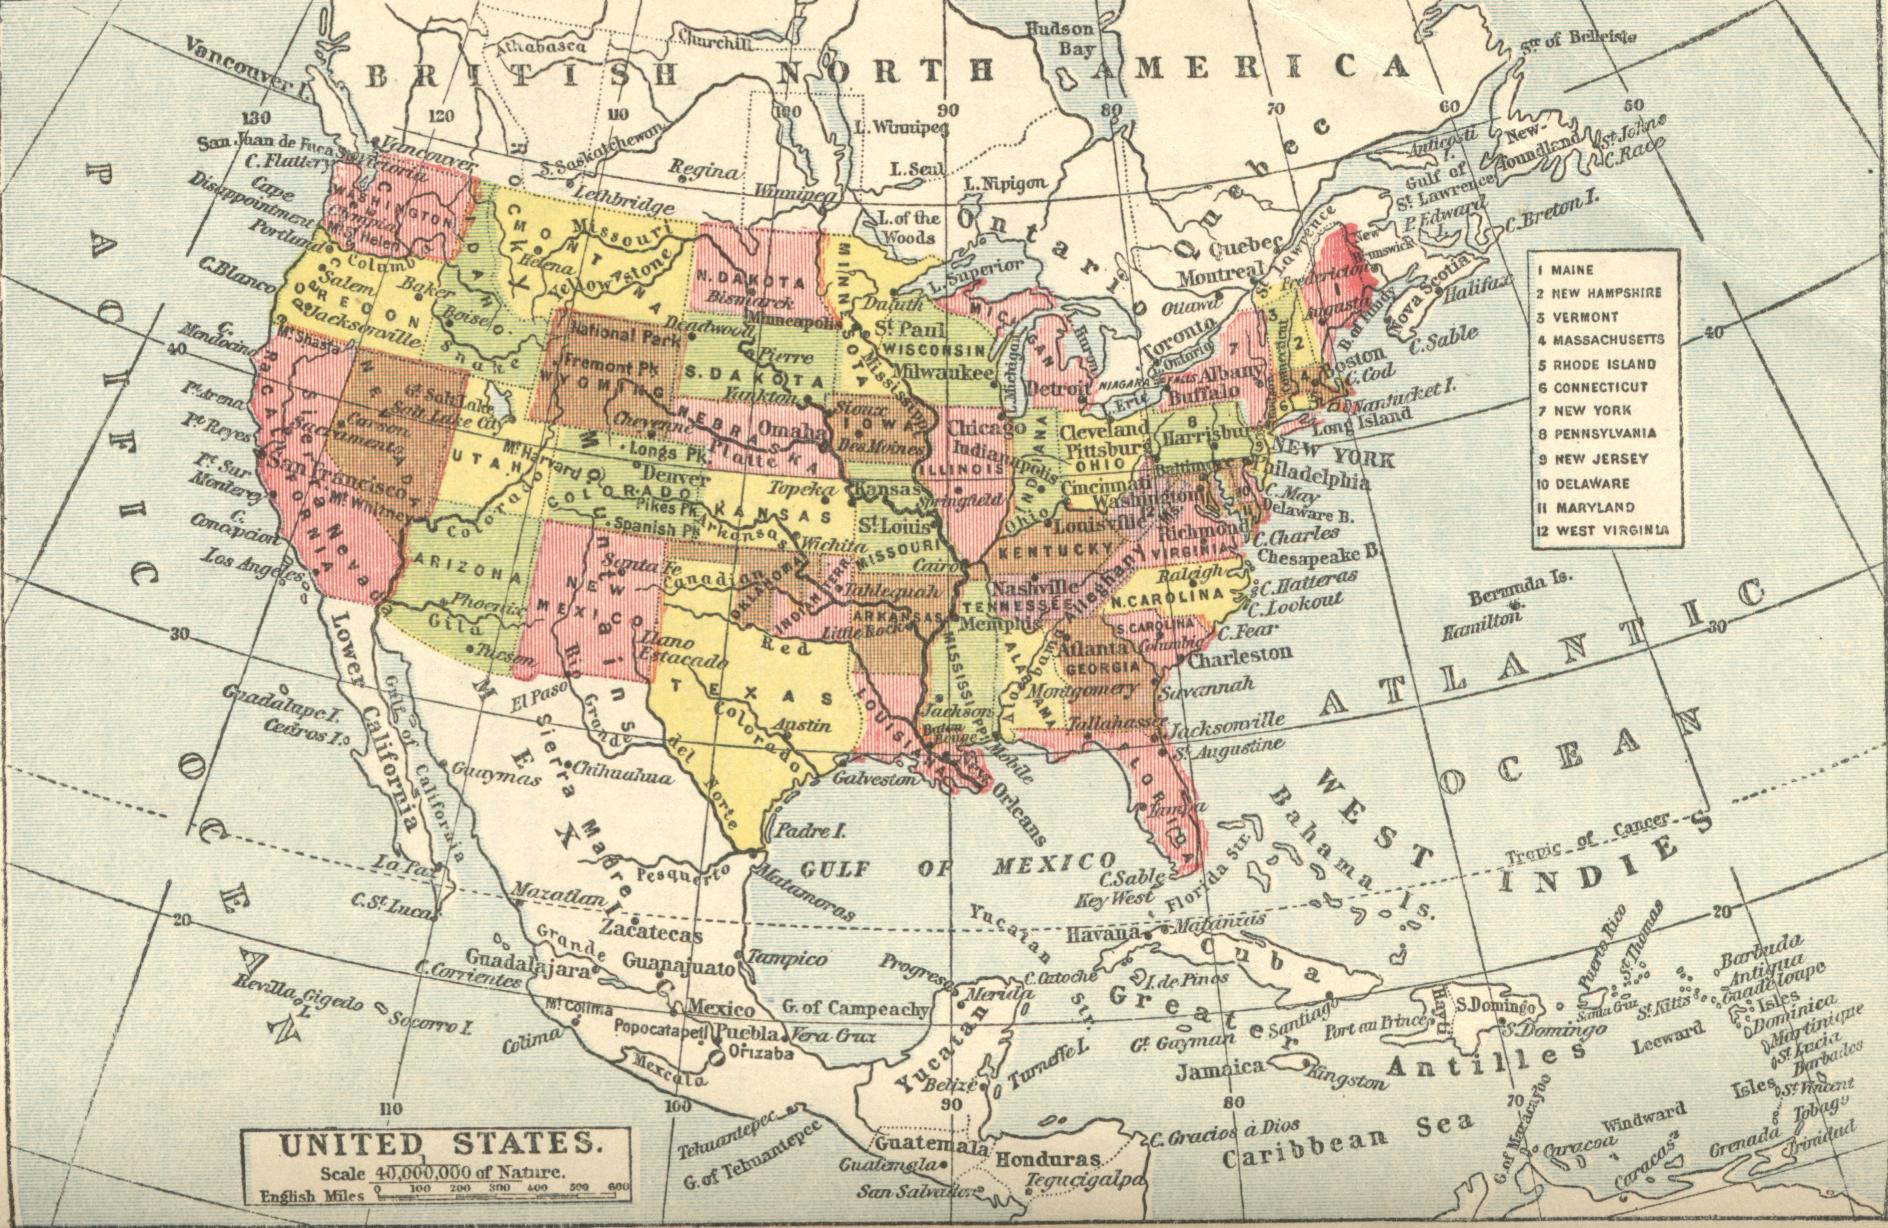 Map Of The United States Of America Also Showing Much Of Canada - The map of united states of america